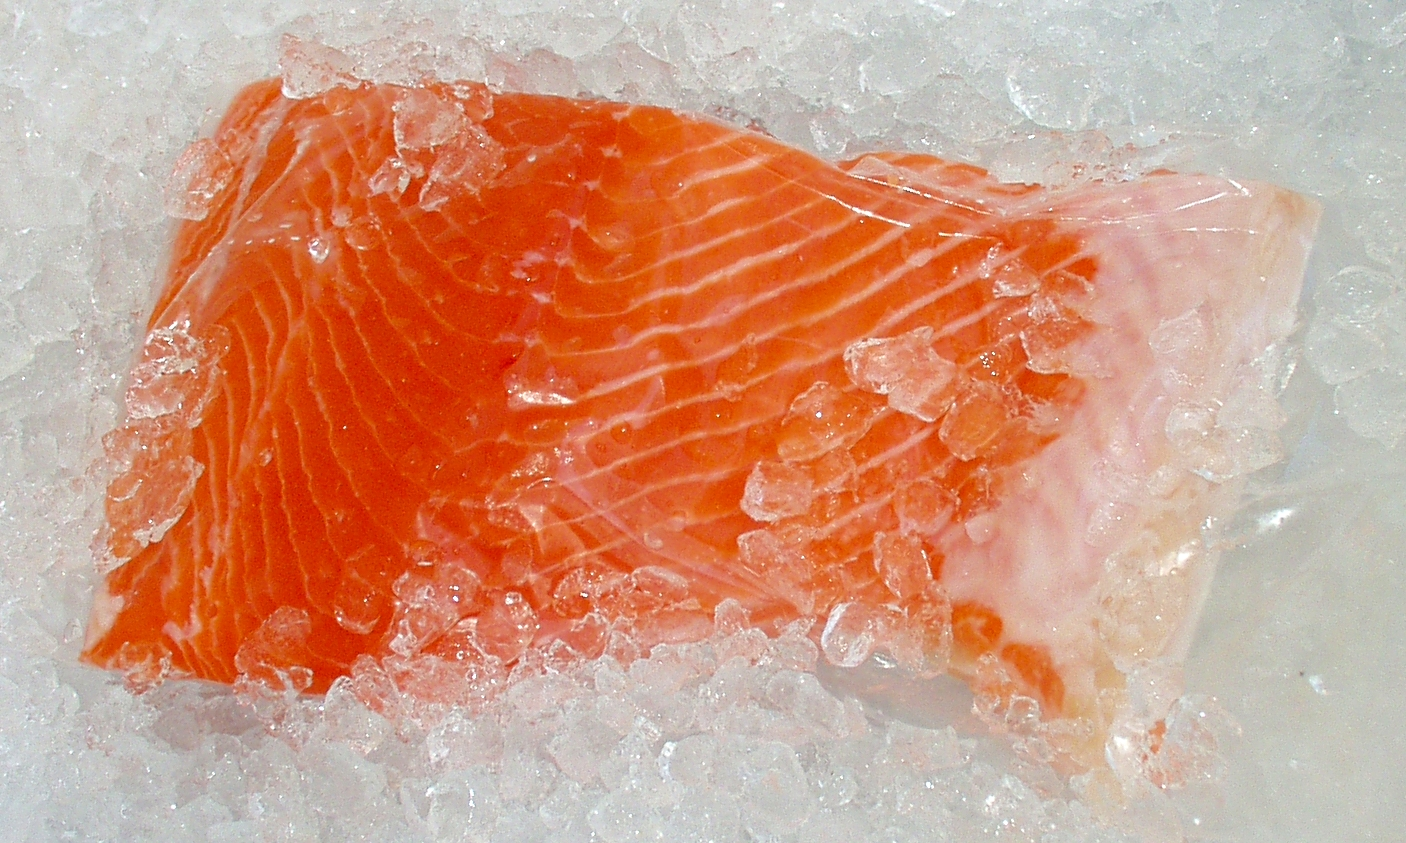 Fresh, wild, Washington king salmon from Wilson Fish. Photo copyright 2010 by Zachary D. Lyons.